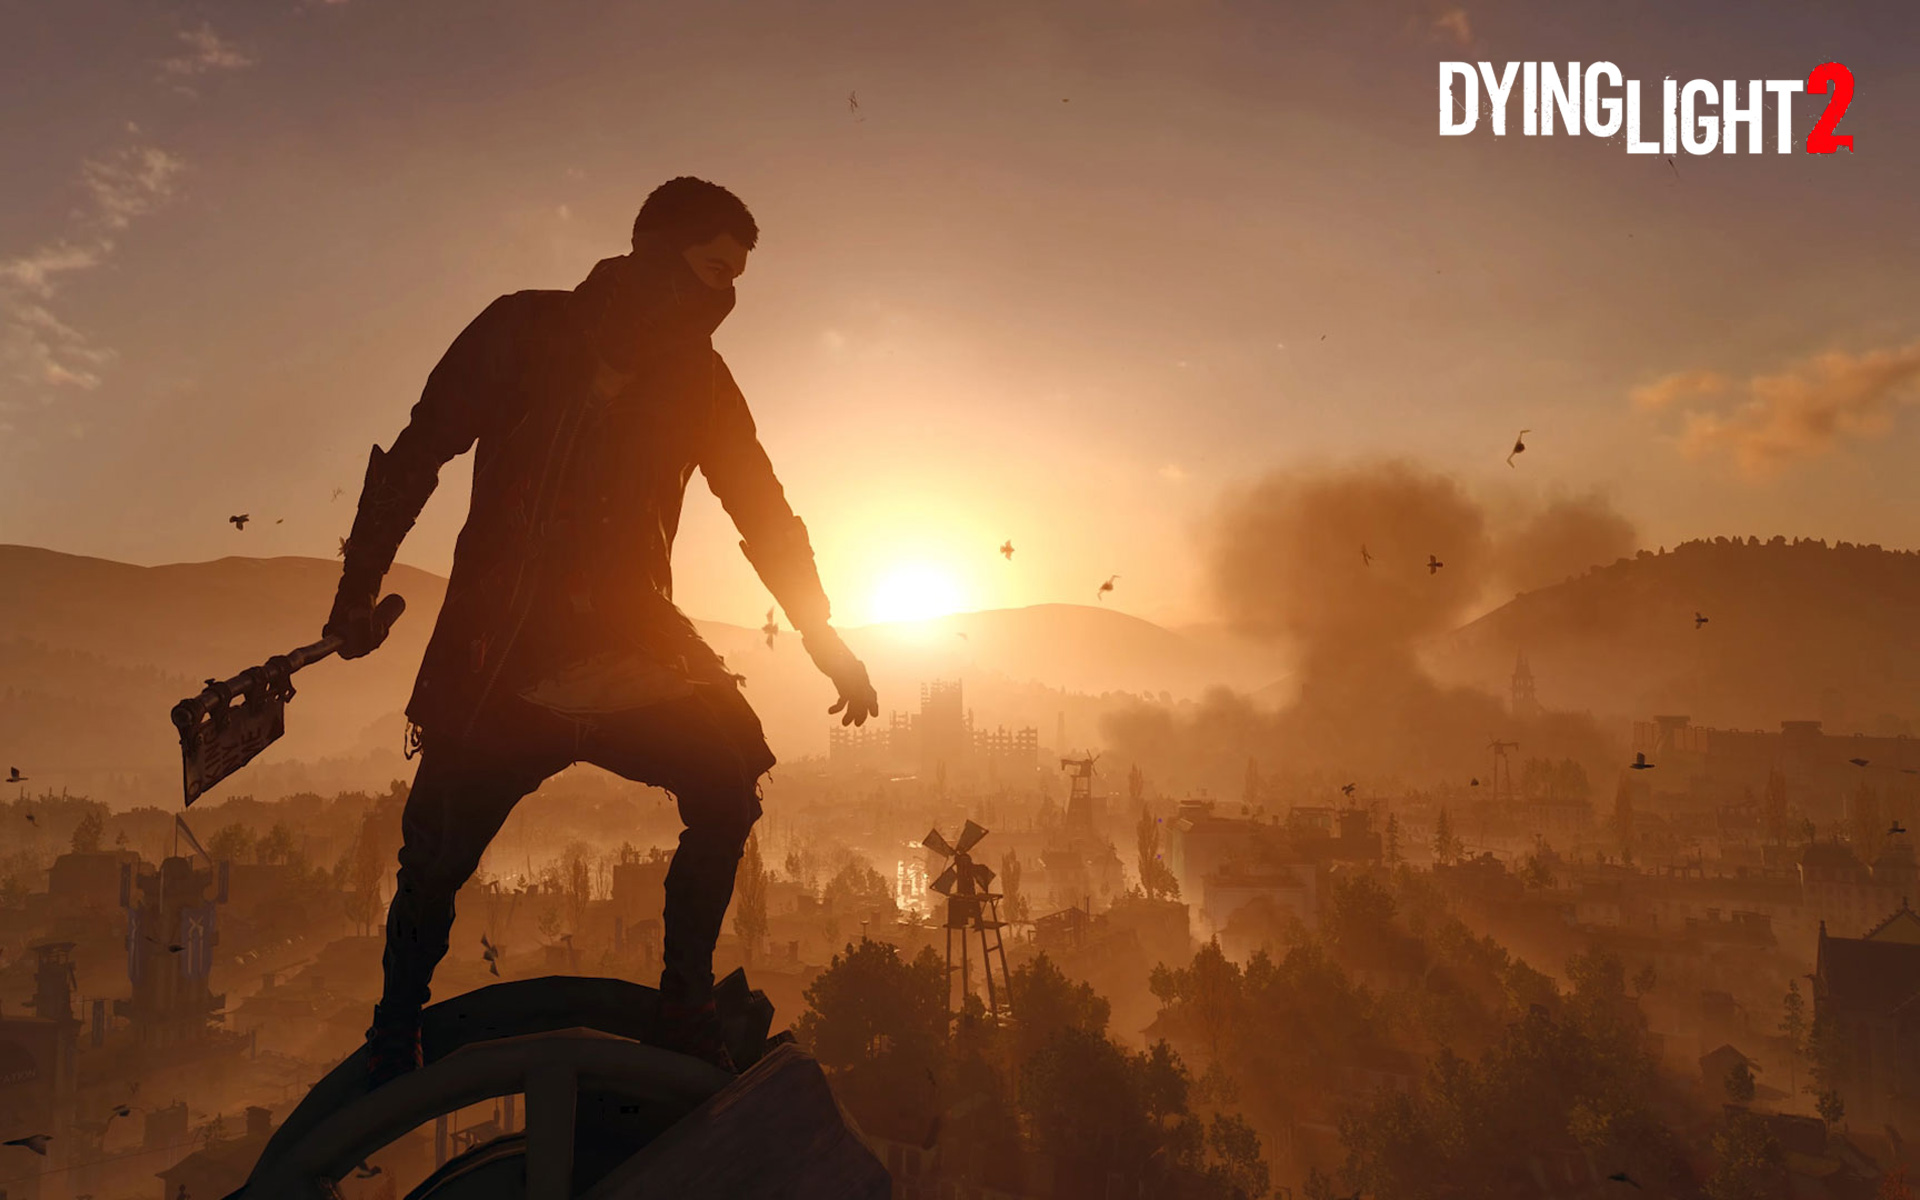 Free Dying Light 2 Wallpaper in 1920x1200